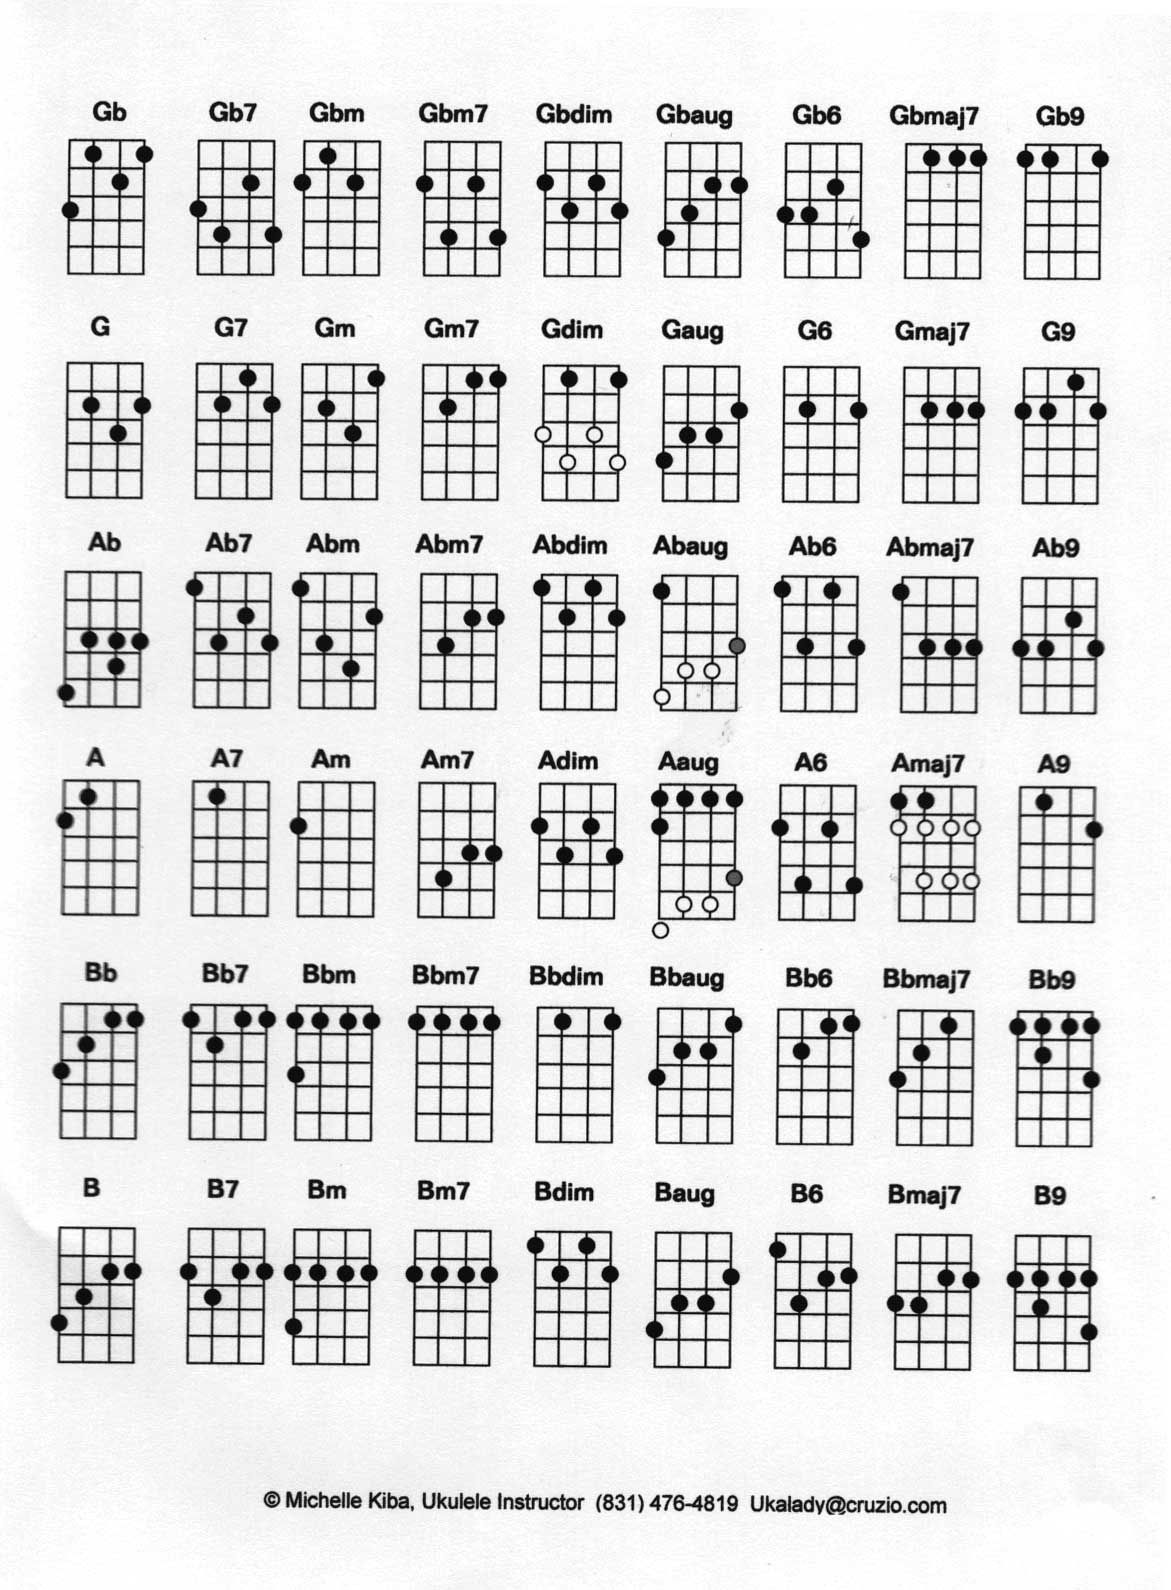 Somedayill learn to play the ukelele ukelele chord chart done ukulele chord chart standard g c e a tuning ukulele songs ukulele tabs ukulele chords ukulele lyrics ukulele tuning hexwebz Image collections